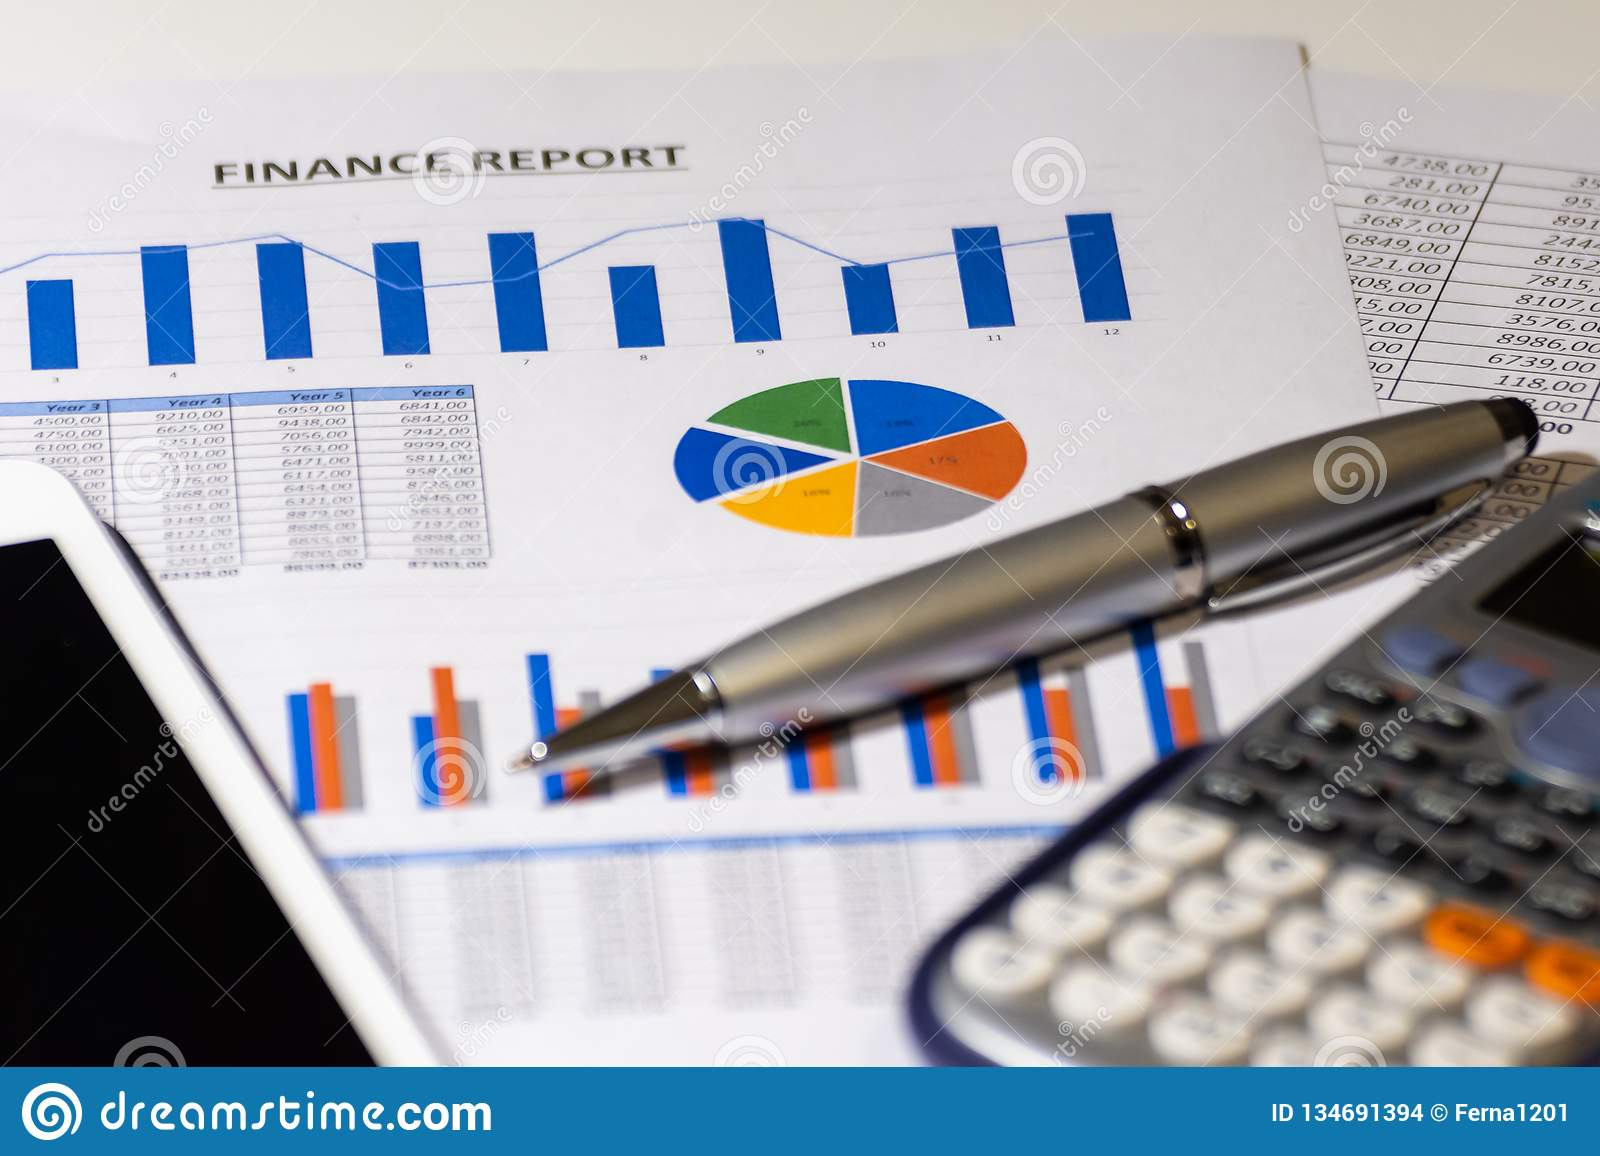 Business diagram on financial report with tablet, pen and calculator